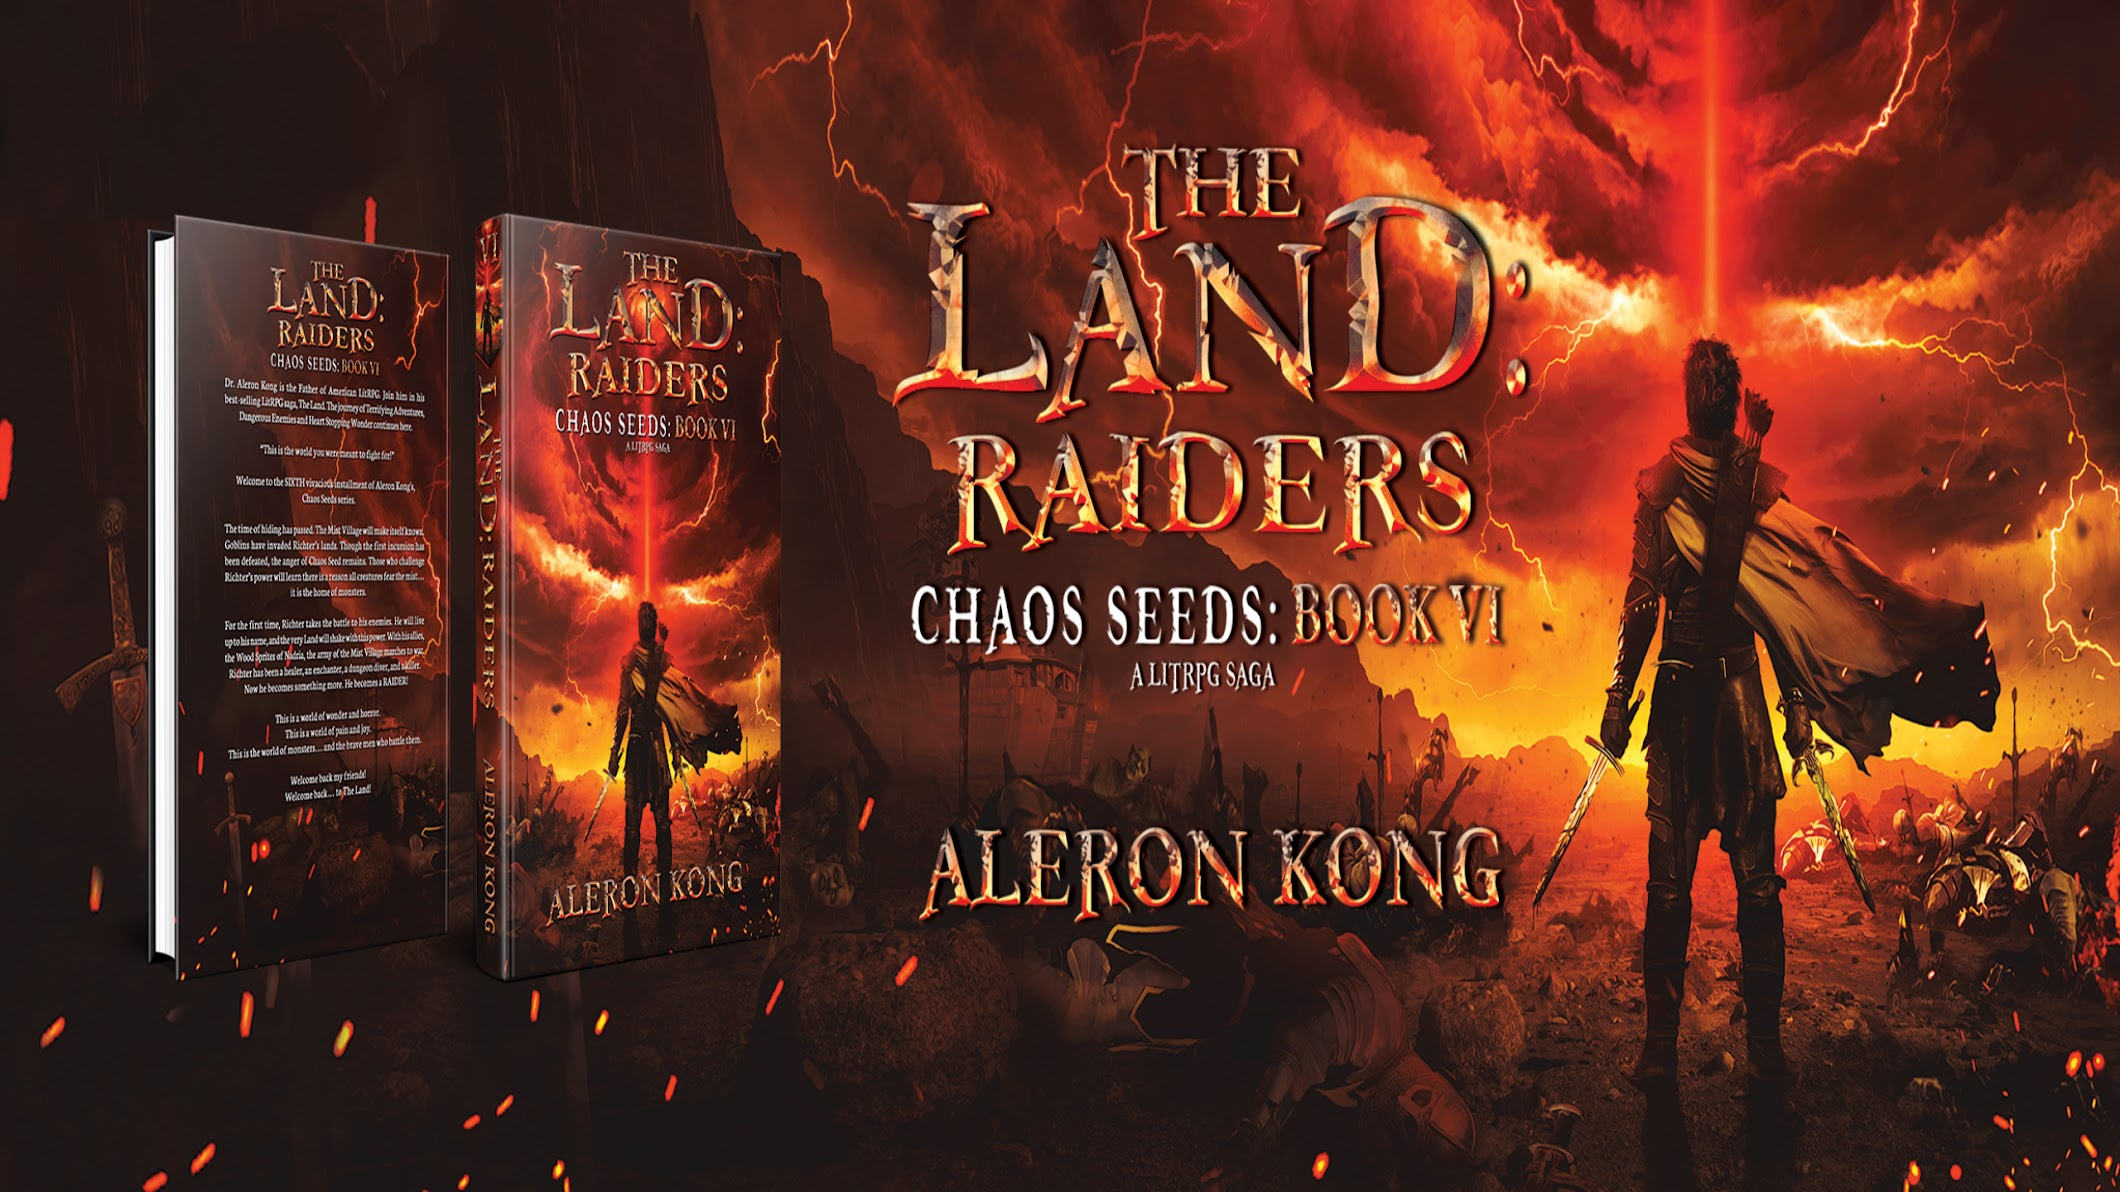 The Land Chaos Seed Book 8